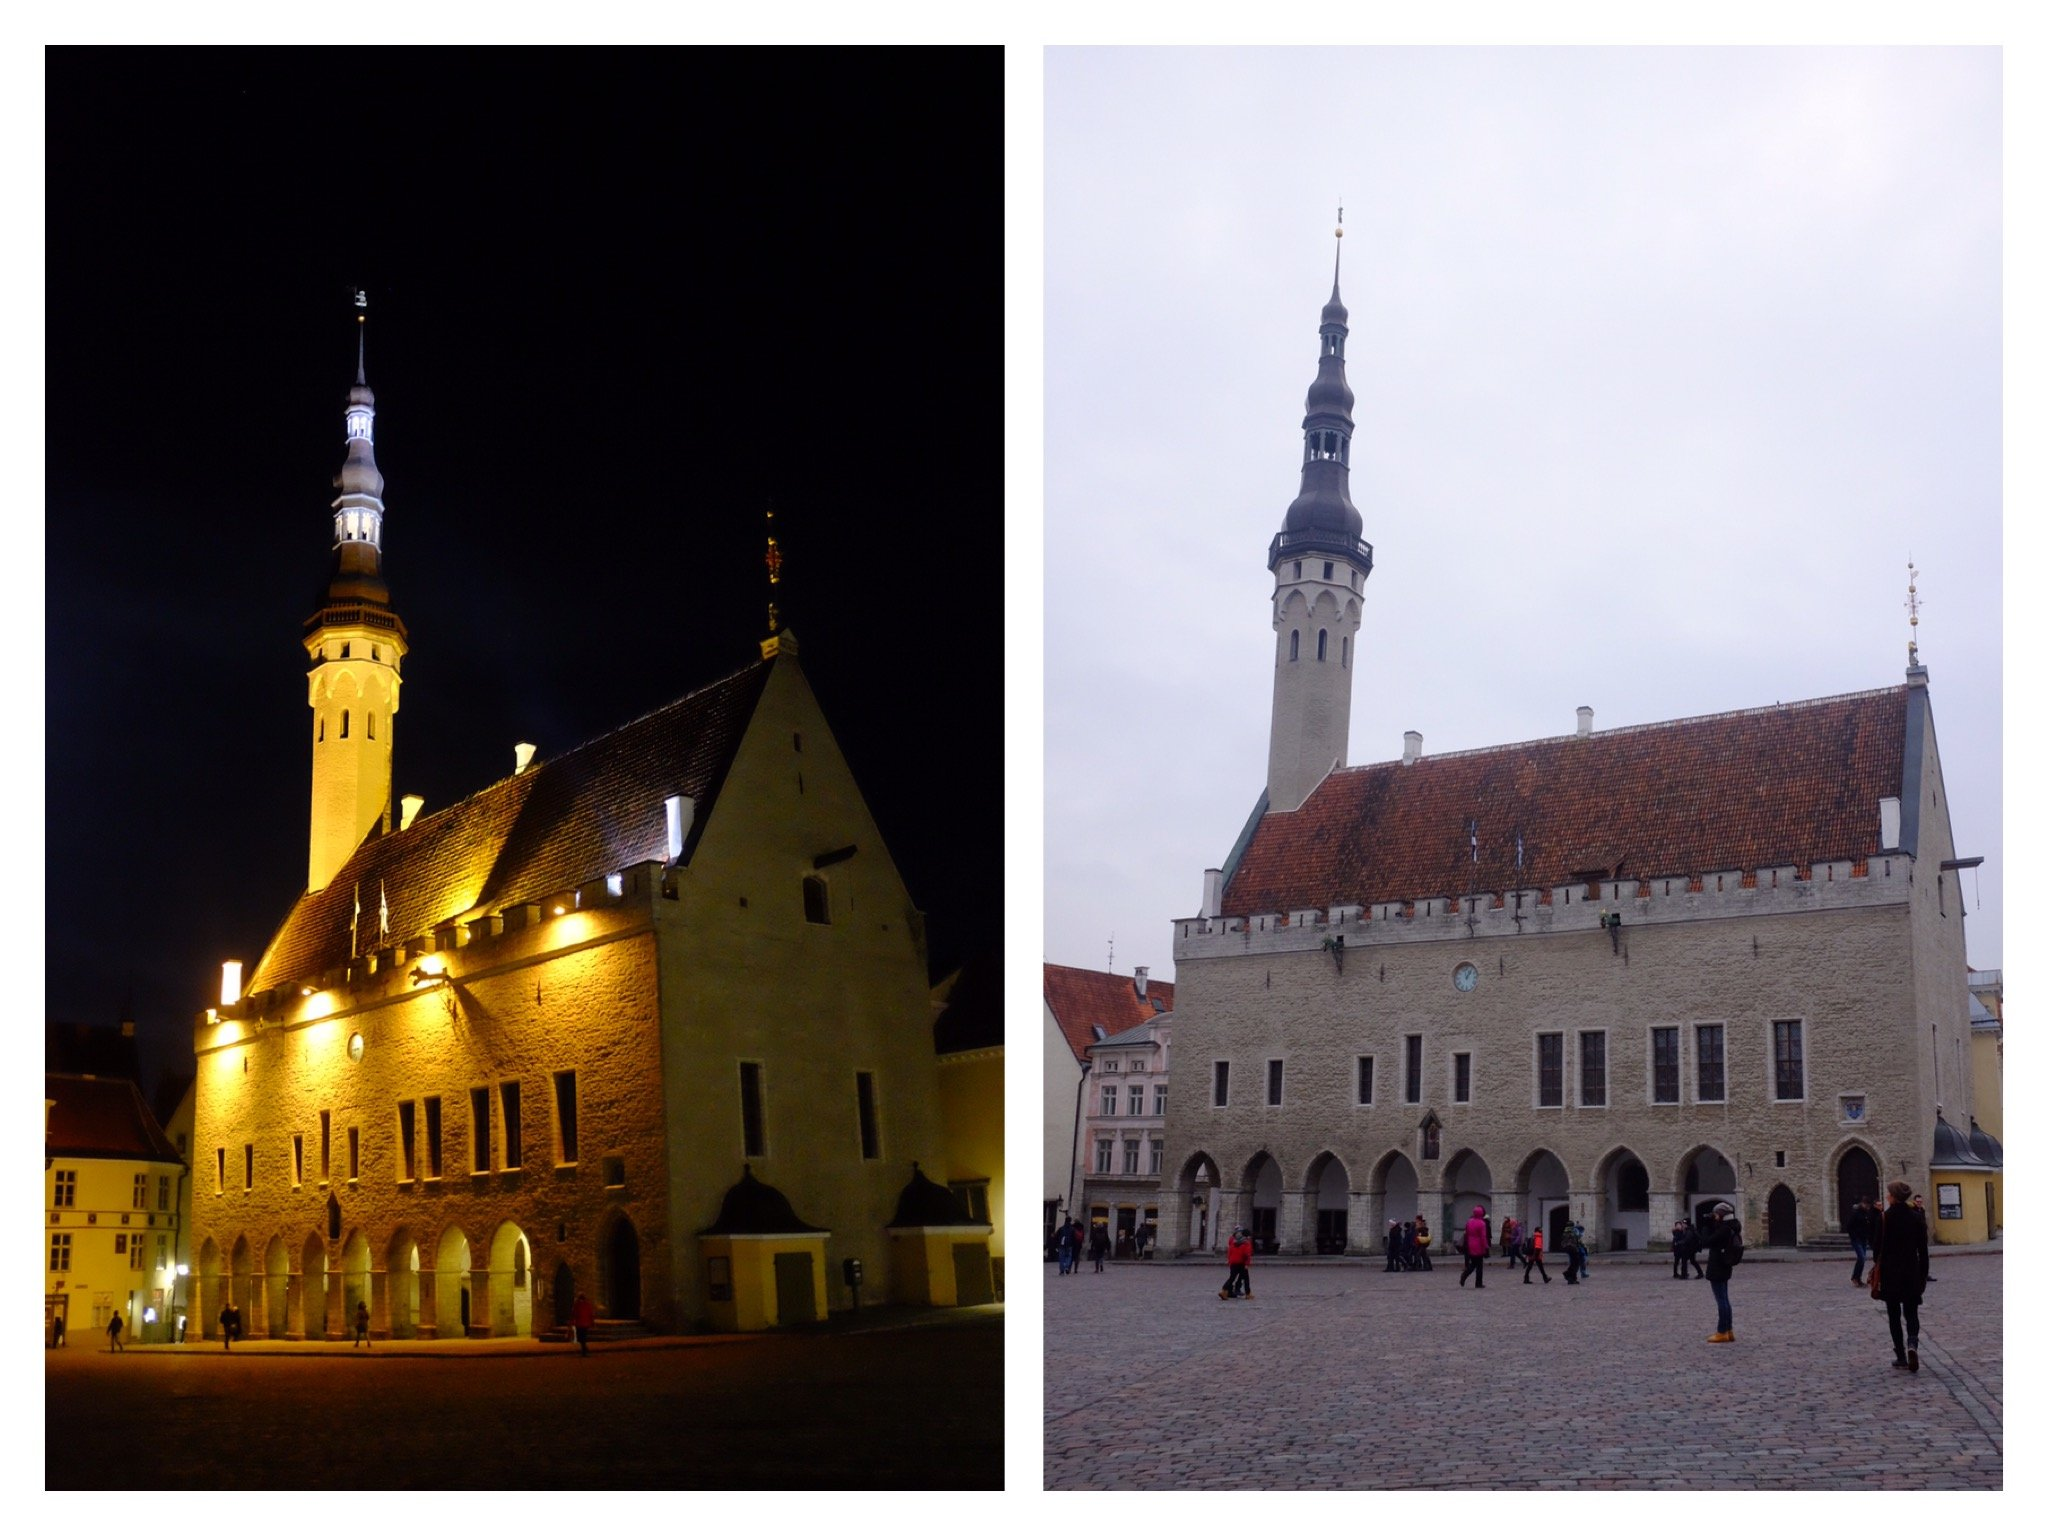 Town hall in Tallinn at night and at day